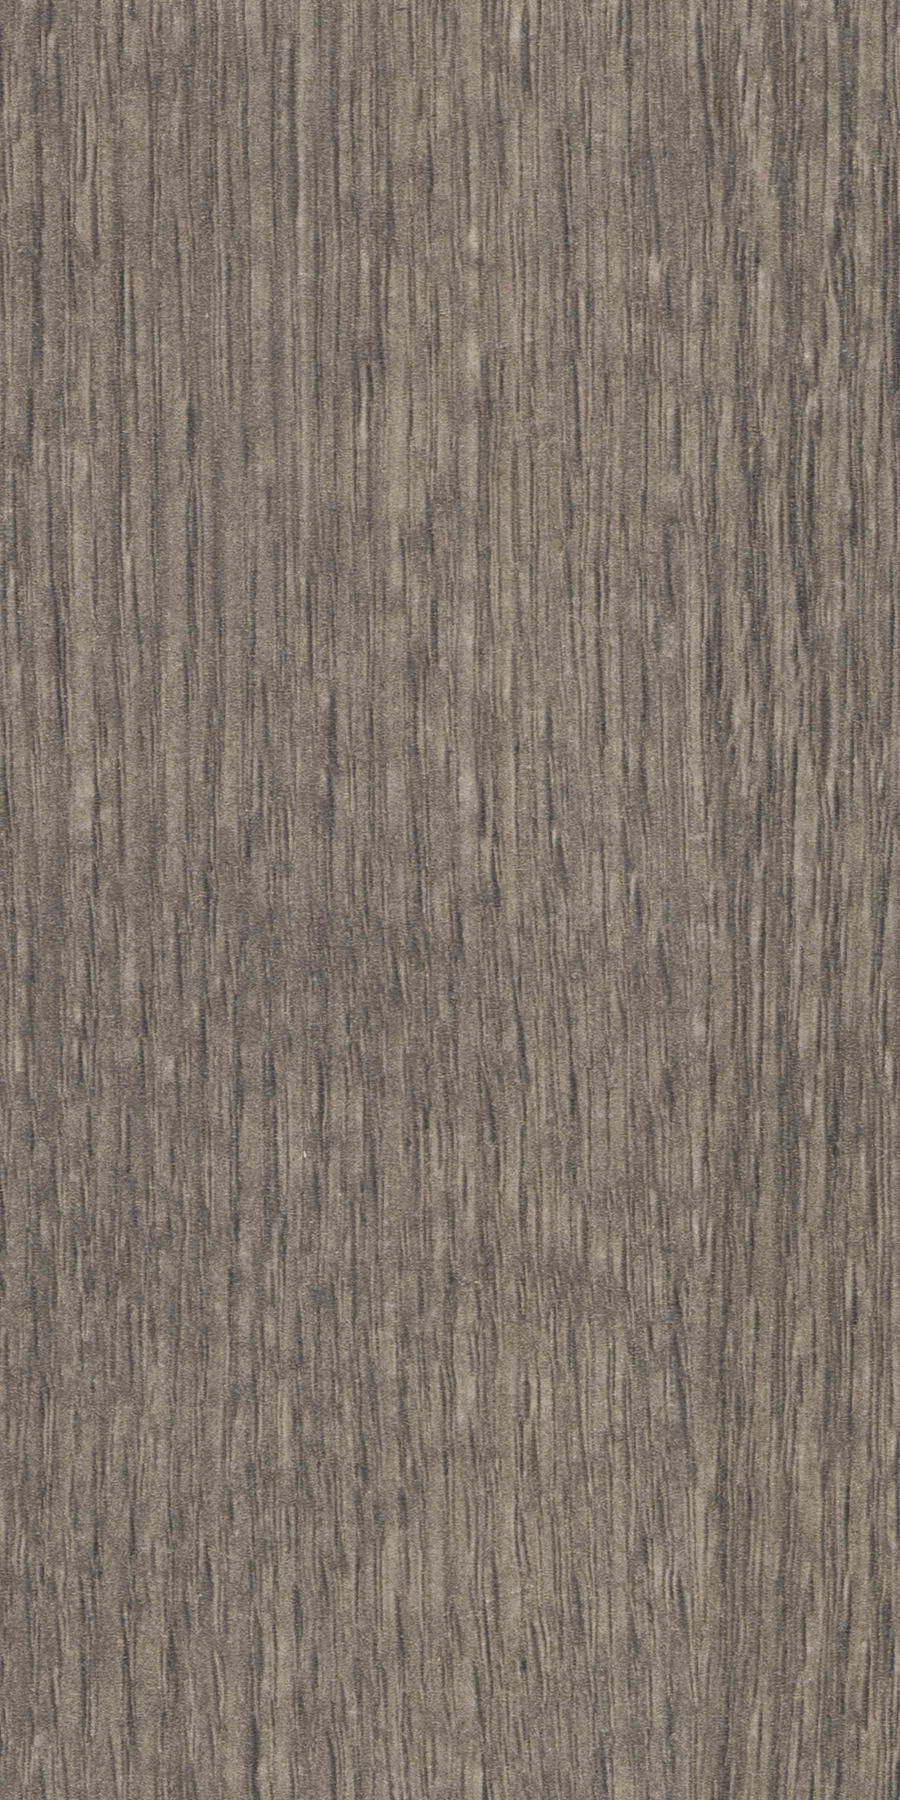 ROVERE-MOOD